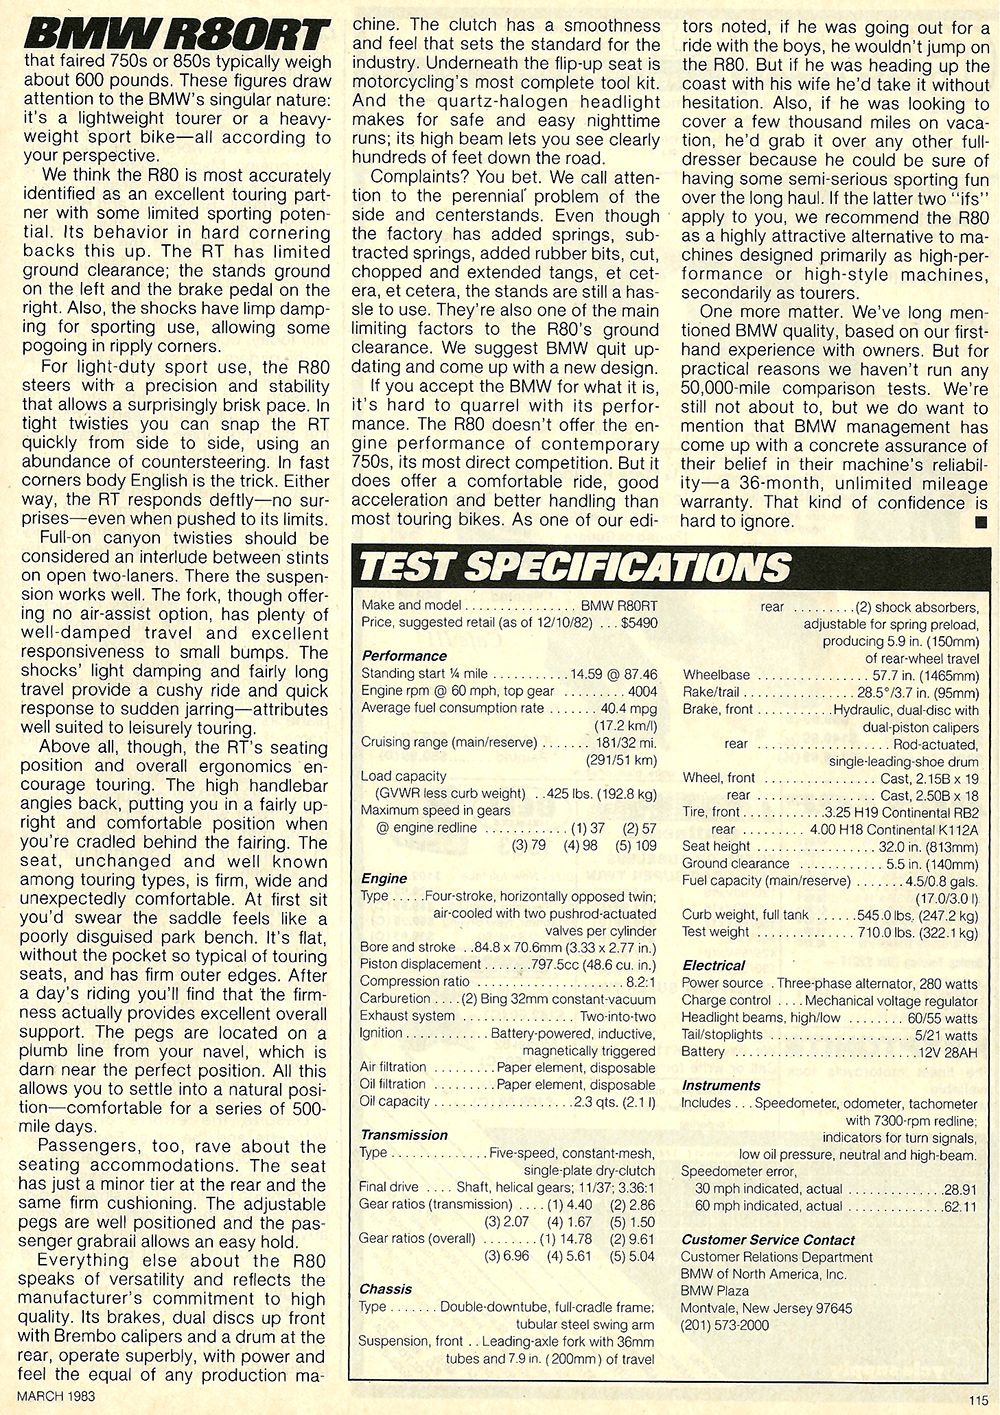 1983 BMW R80RT road test 7.jpg